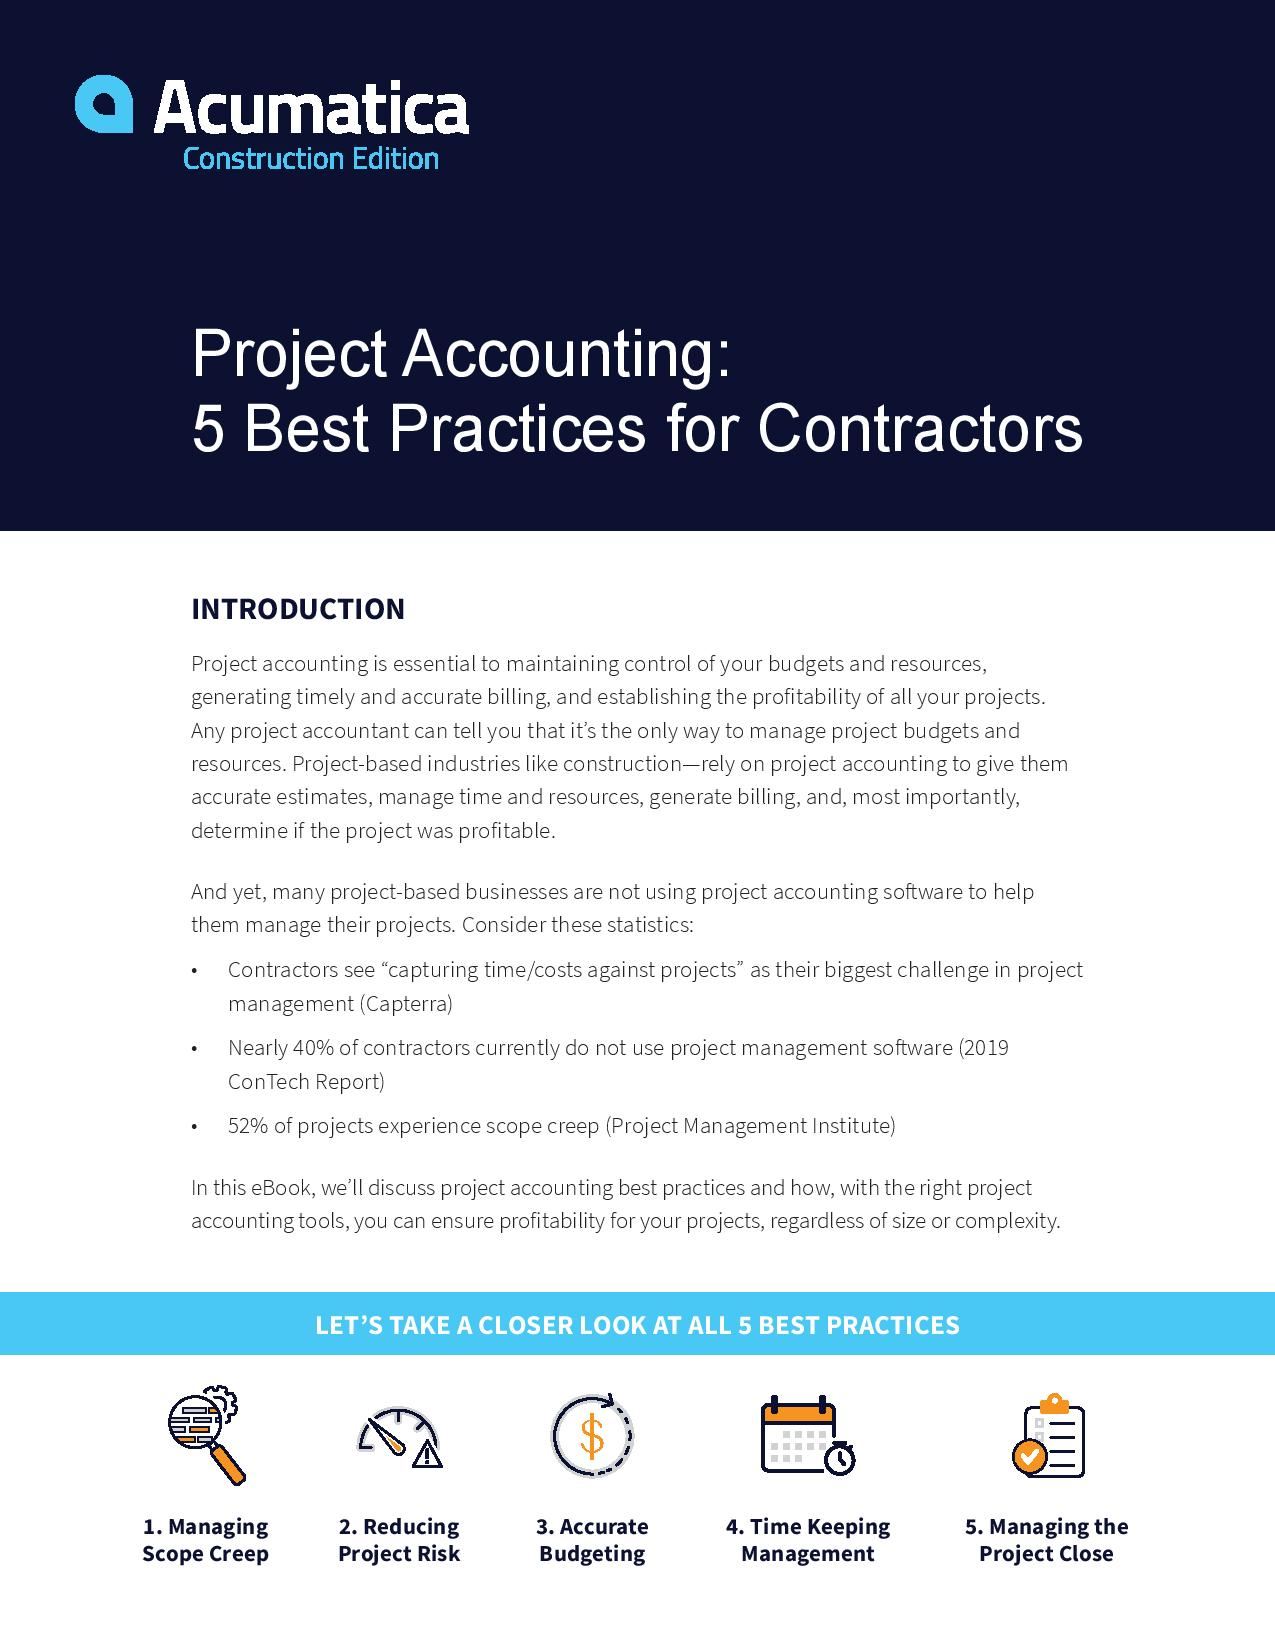 Project Accounting Best Practices Made Simple, page 0